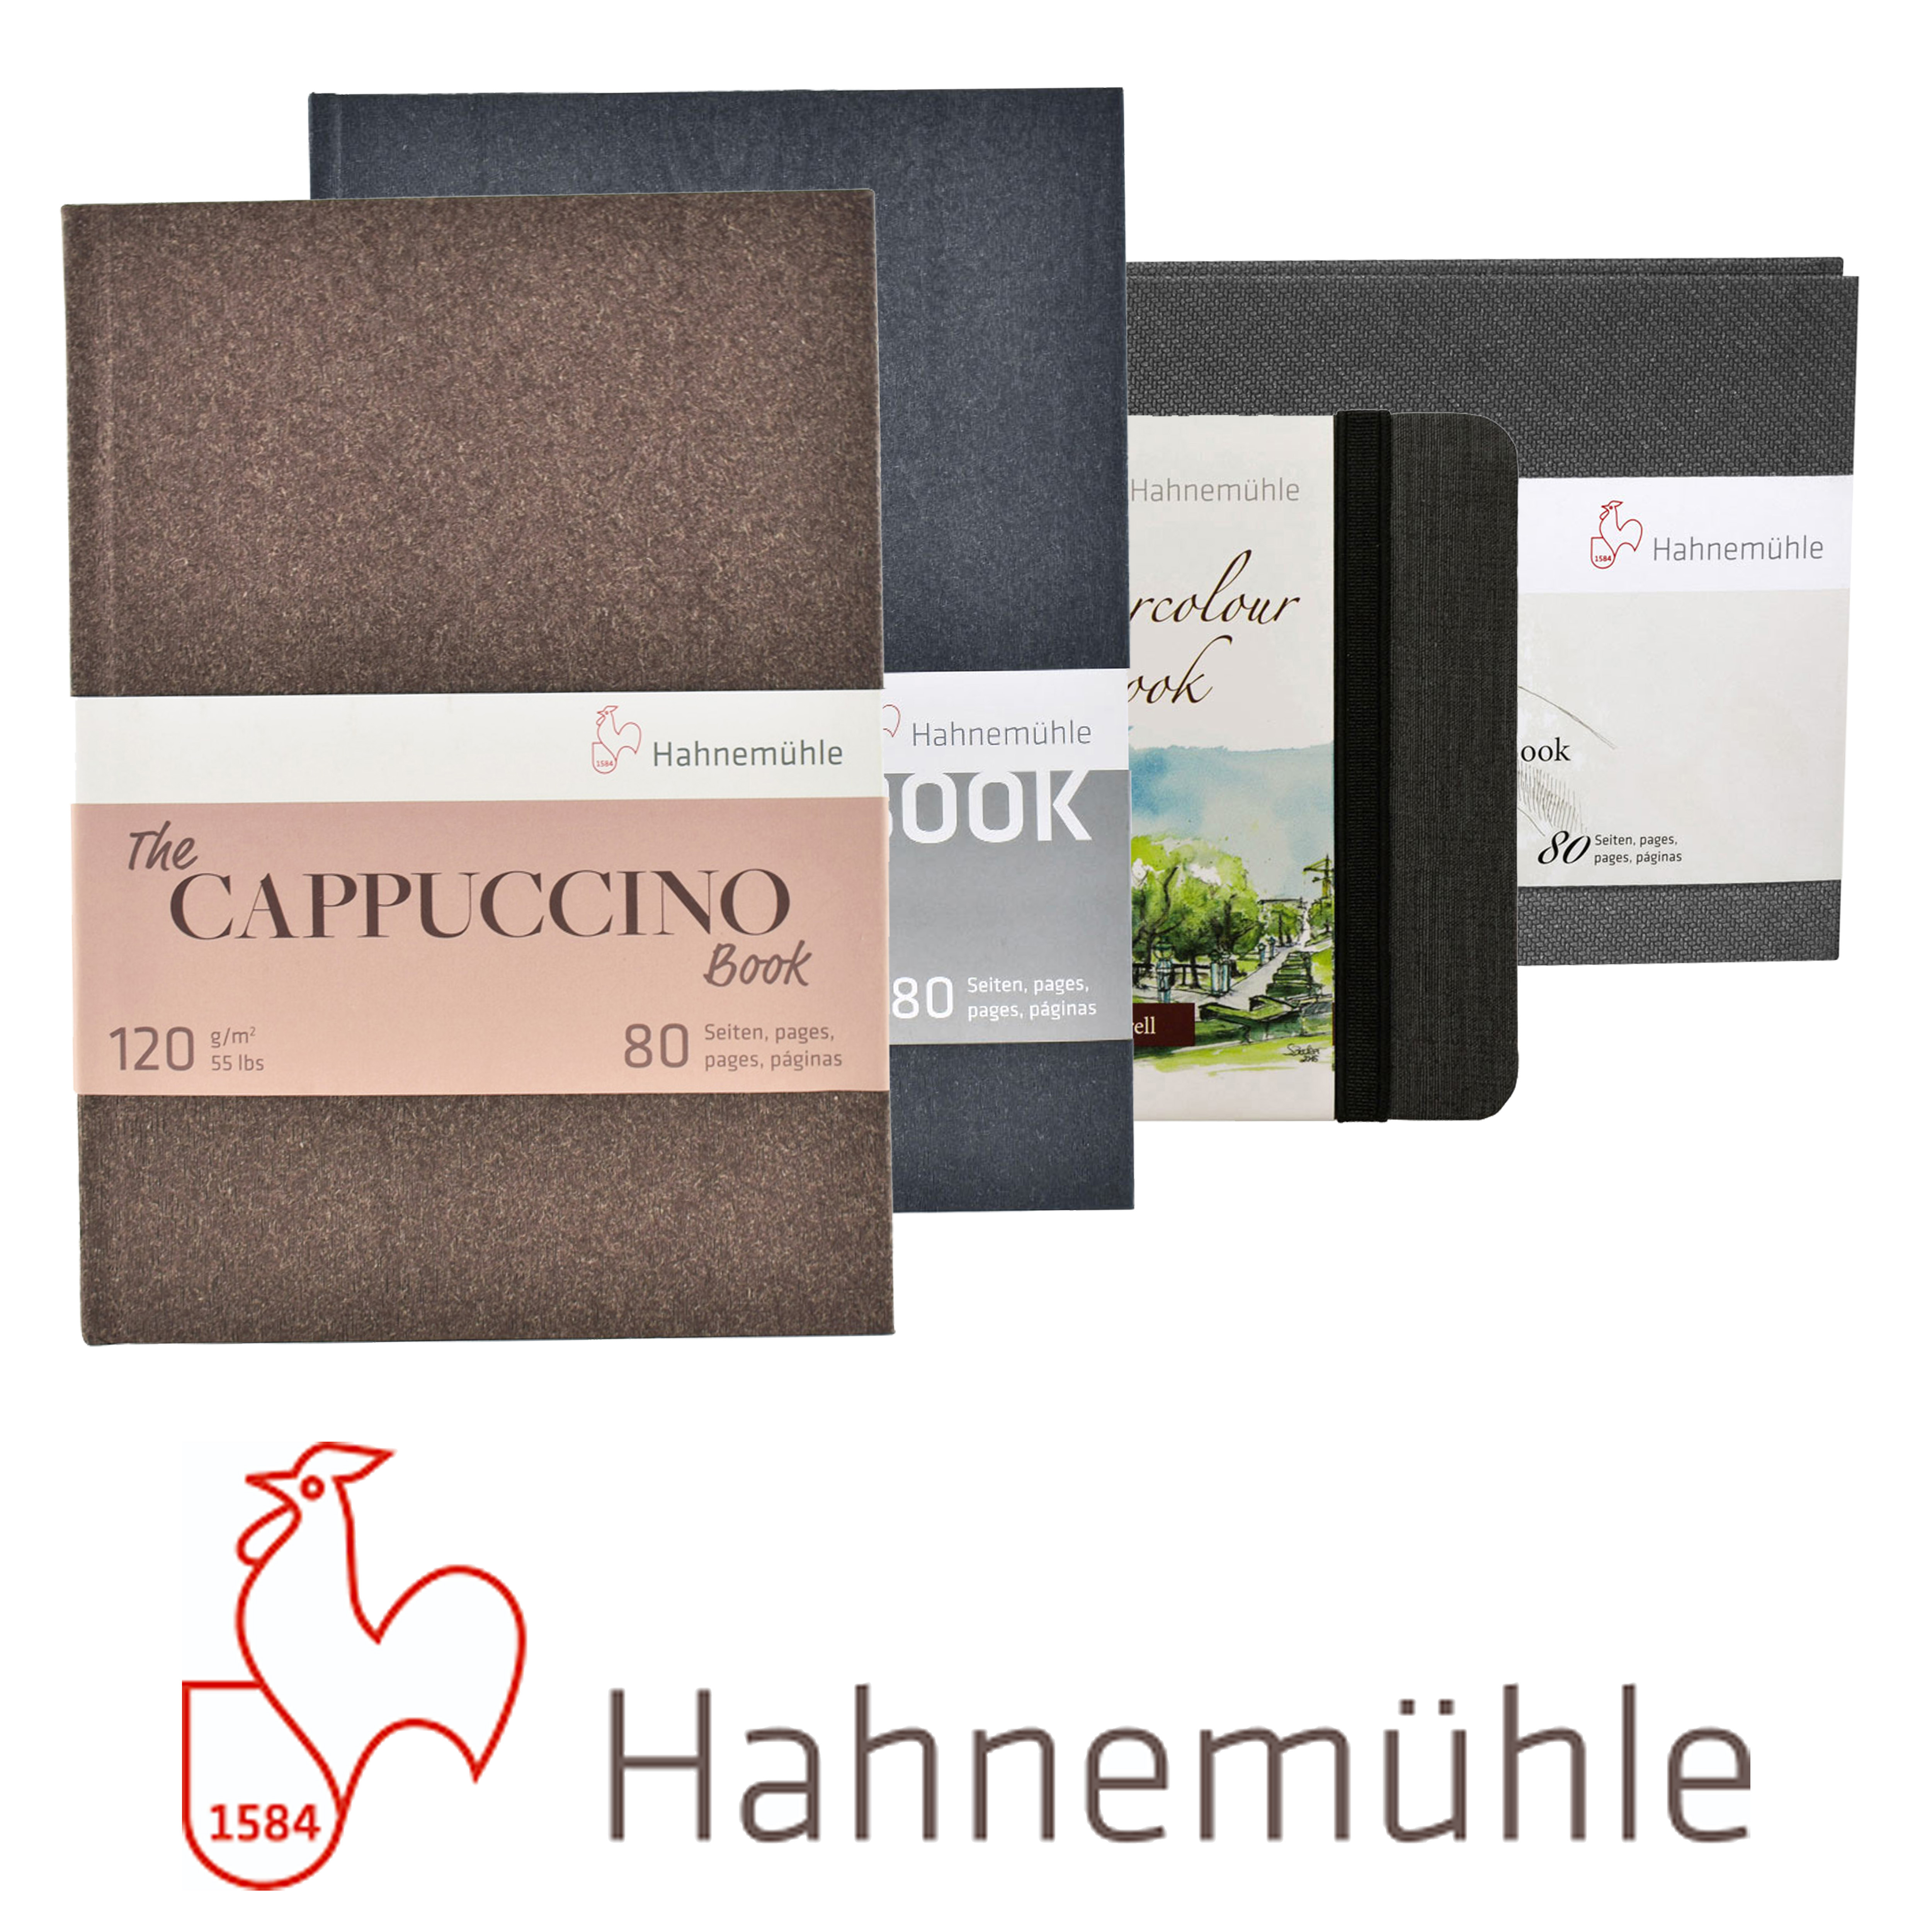 Hahnemuhle New Products